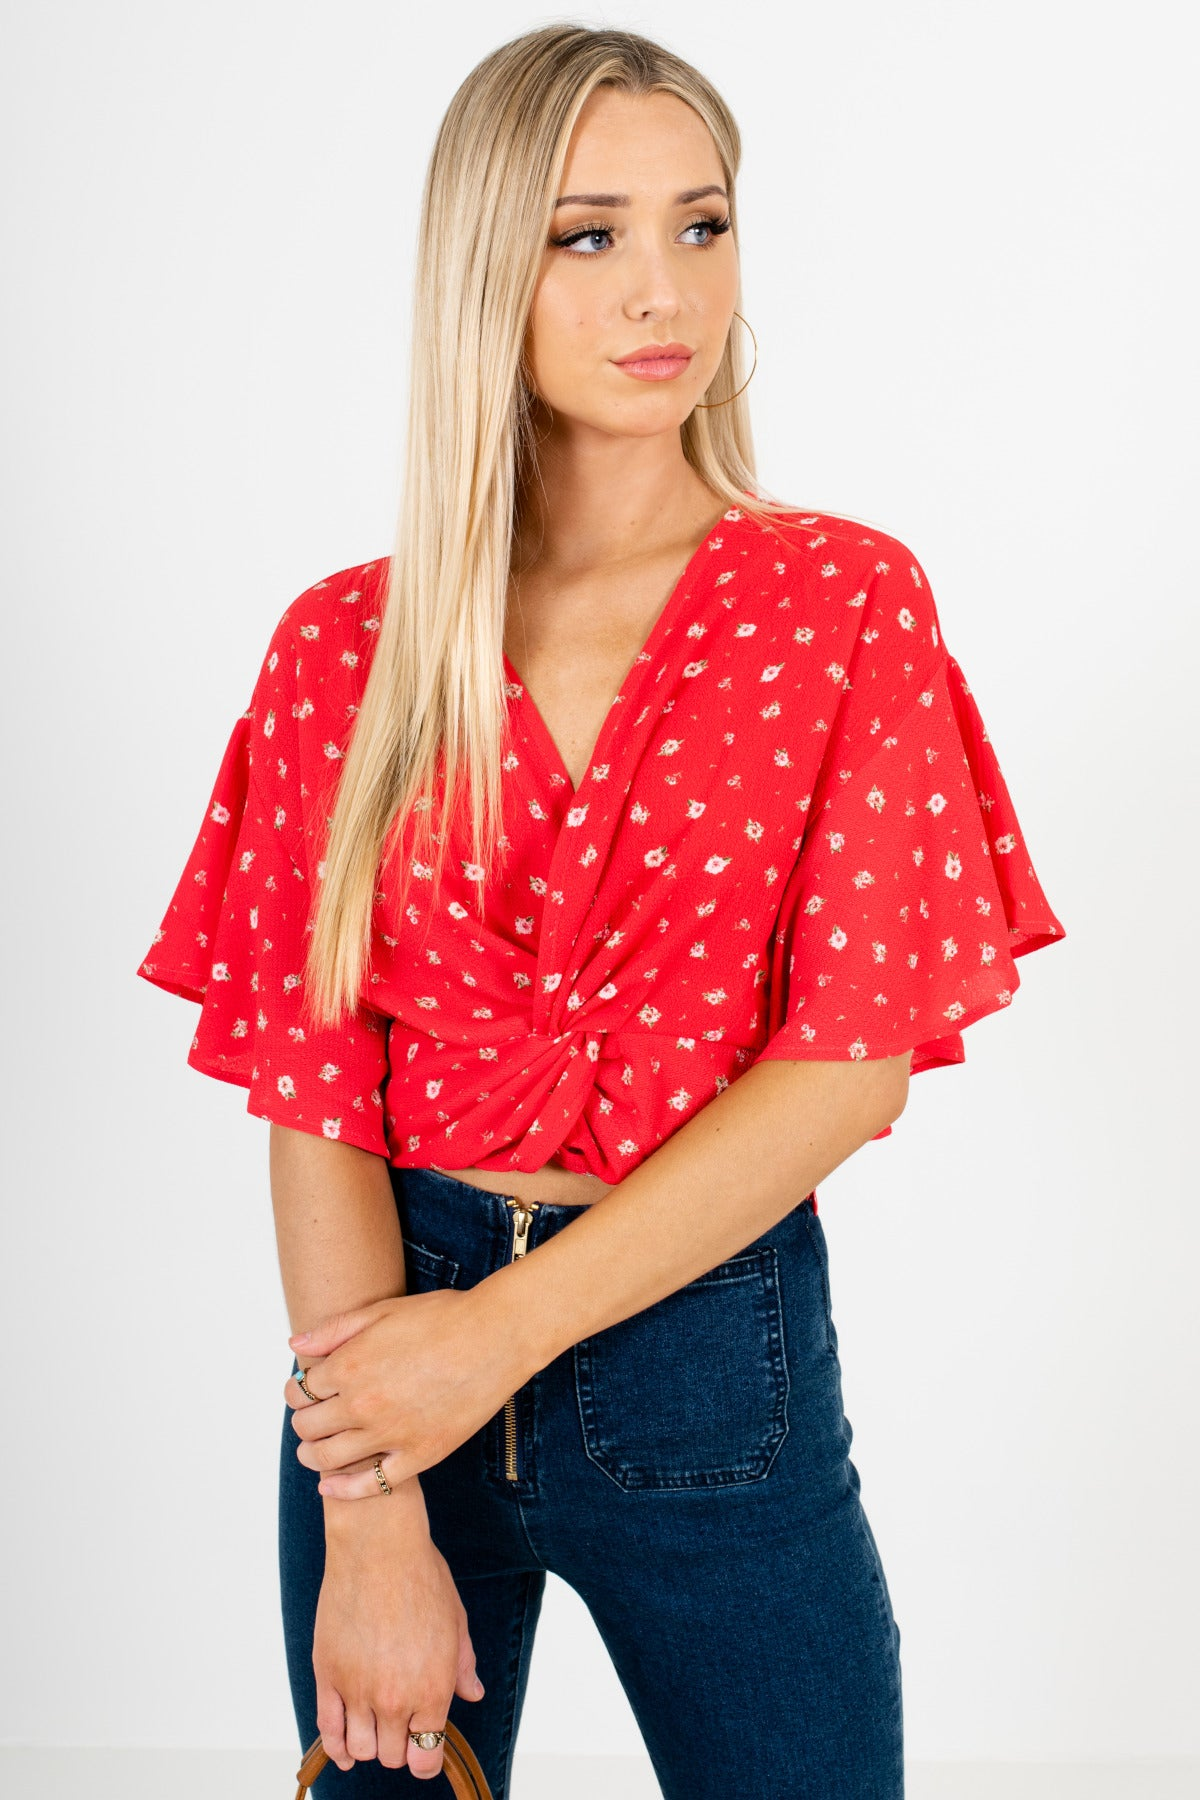 Red Floral Infinity Knot Crop Tops Affordable Online Boutique